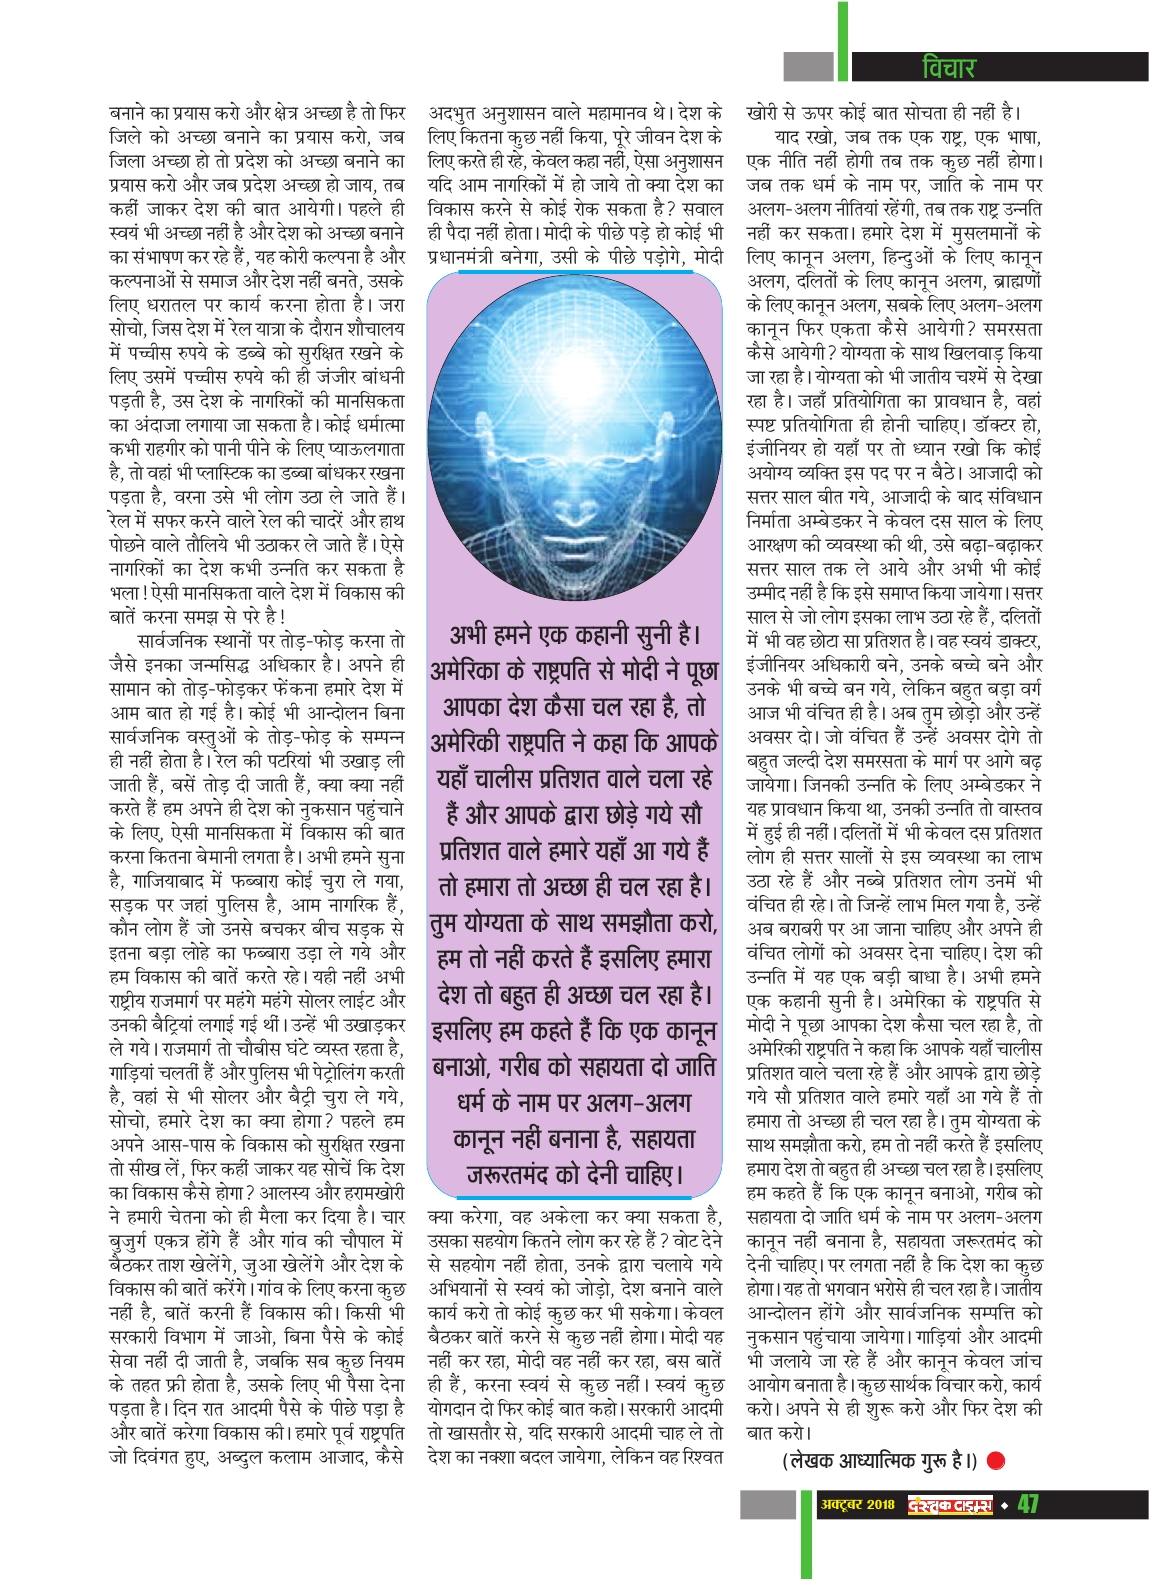 Dastak Times Final Sept-Oct49